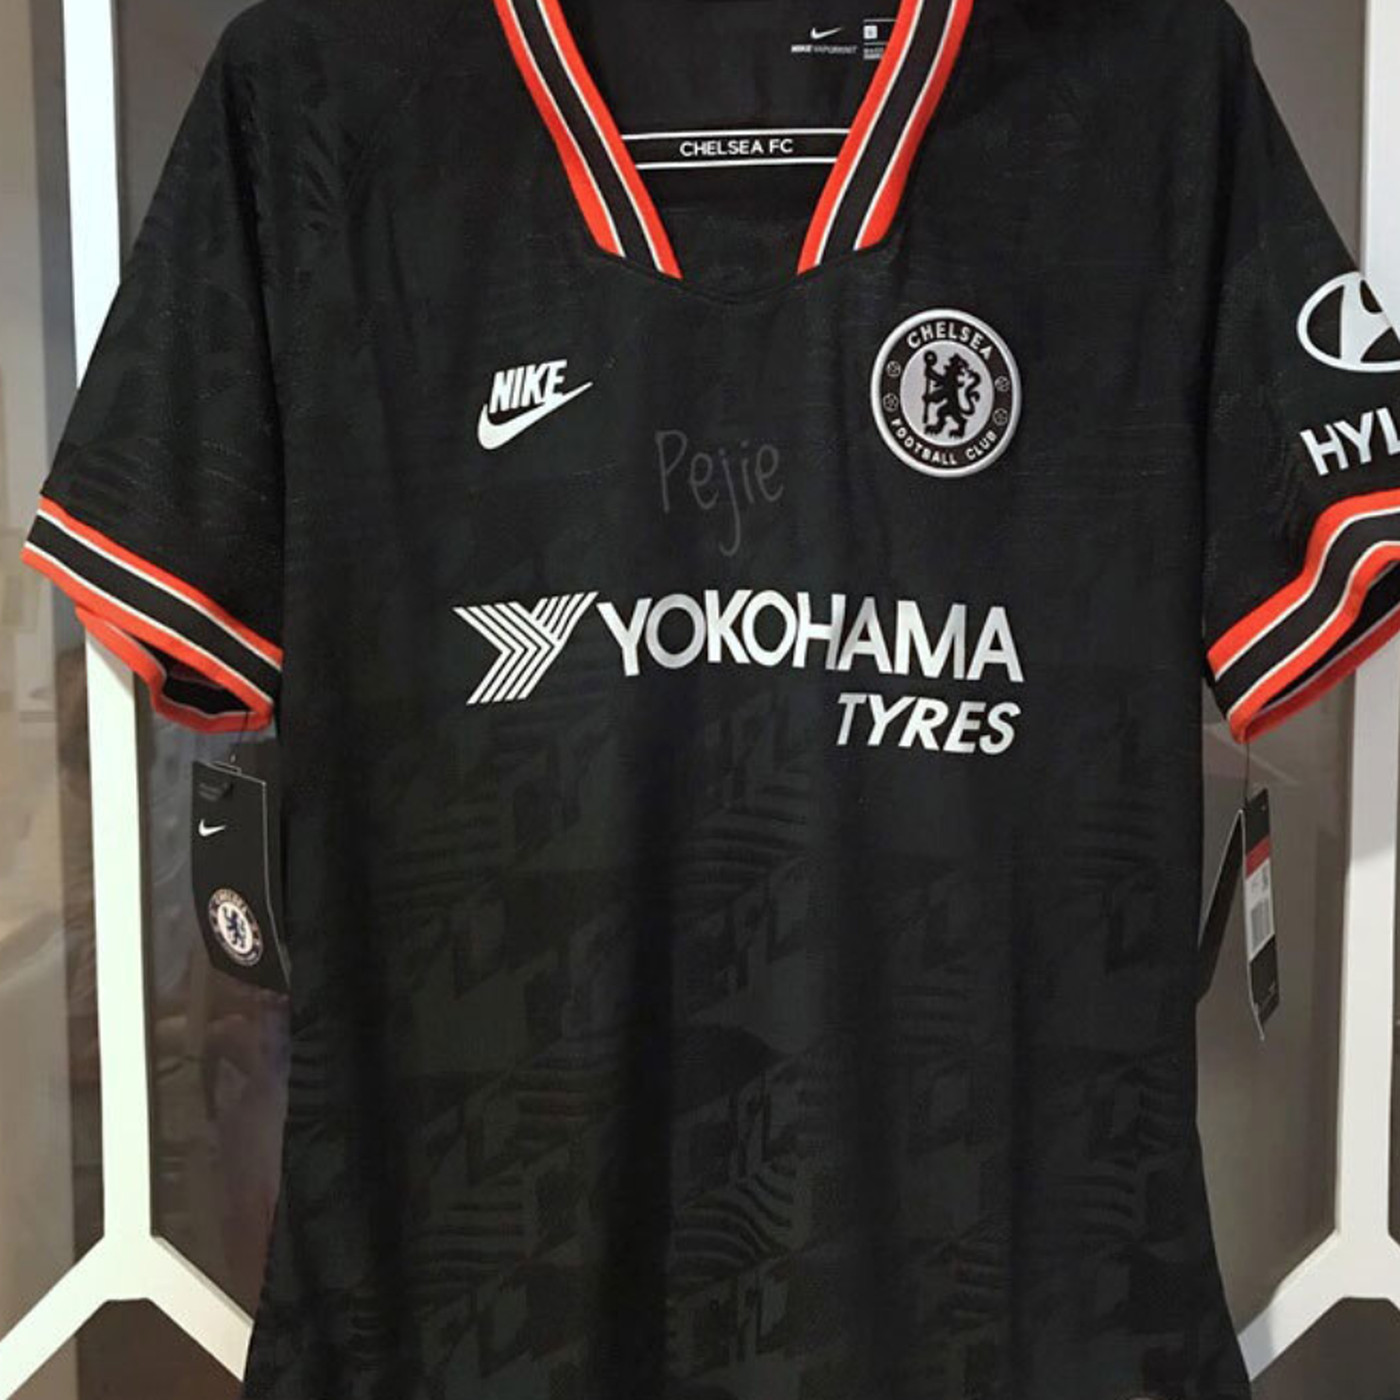 promo code 95eac 49f43 New Nike 2019-20 Chelsea third shirt spotted in the wild ...